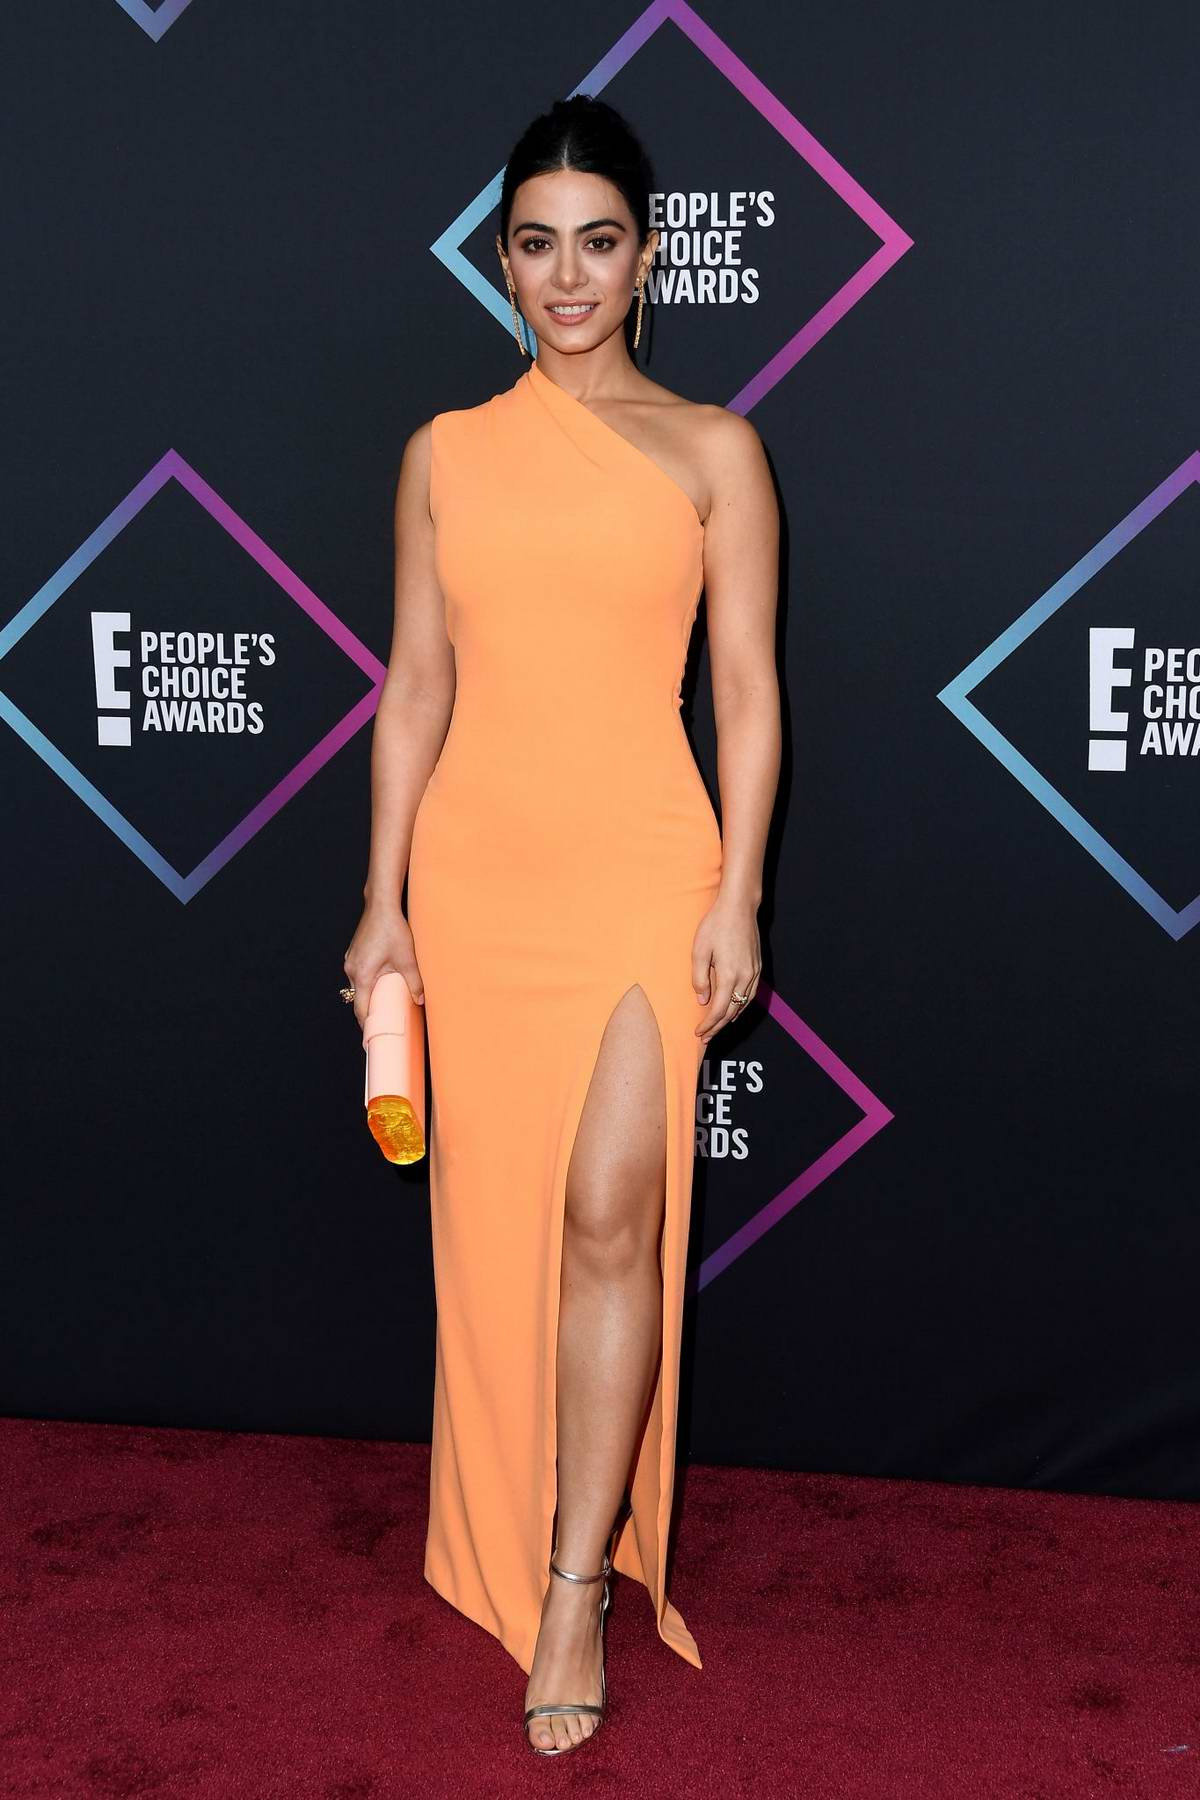 Emeraude Toubia attends People's Choice Awards 2018 at Barker Hangar in Santa Monica, California